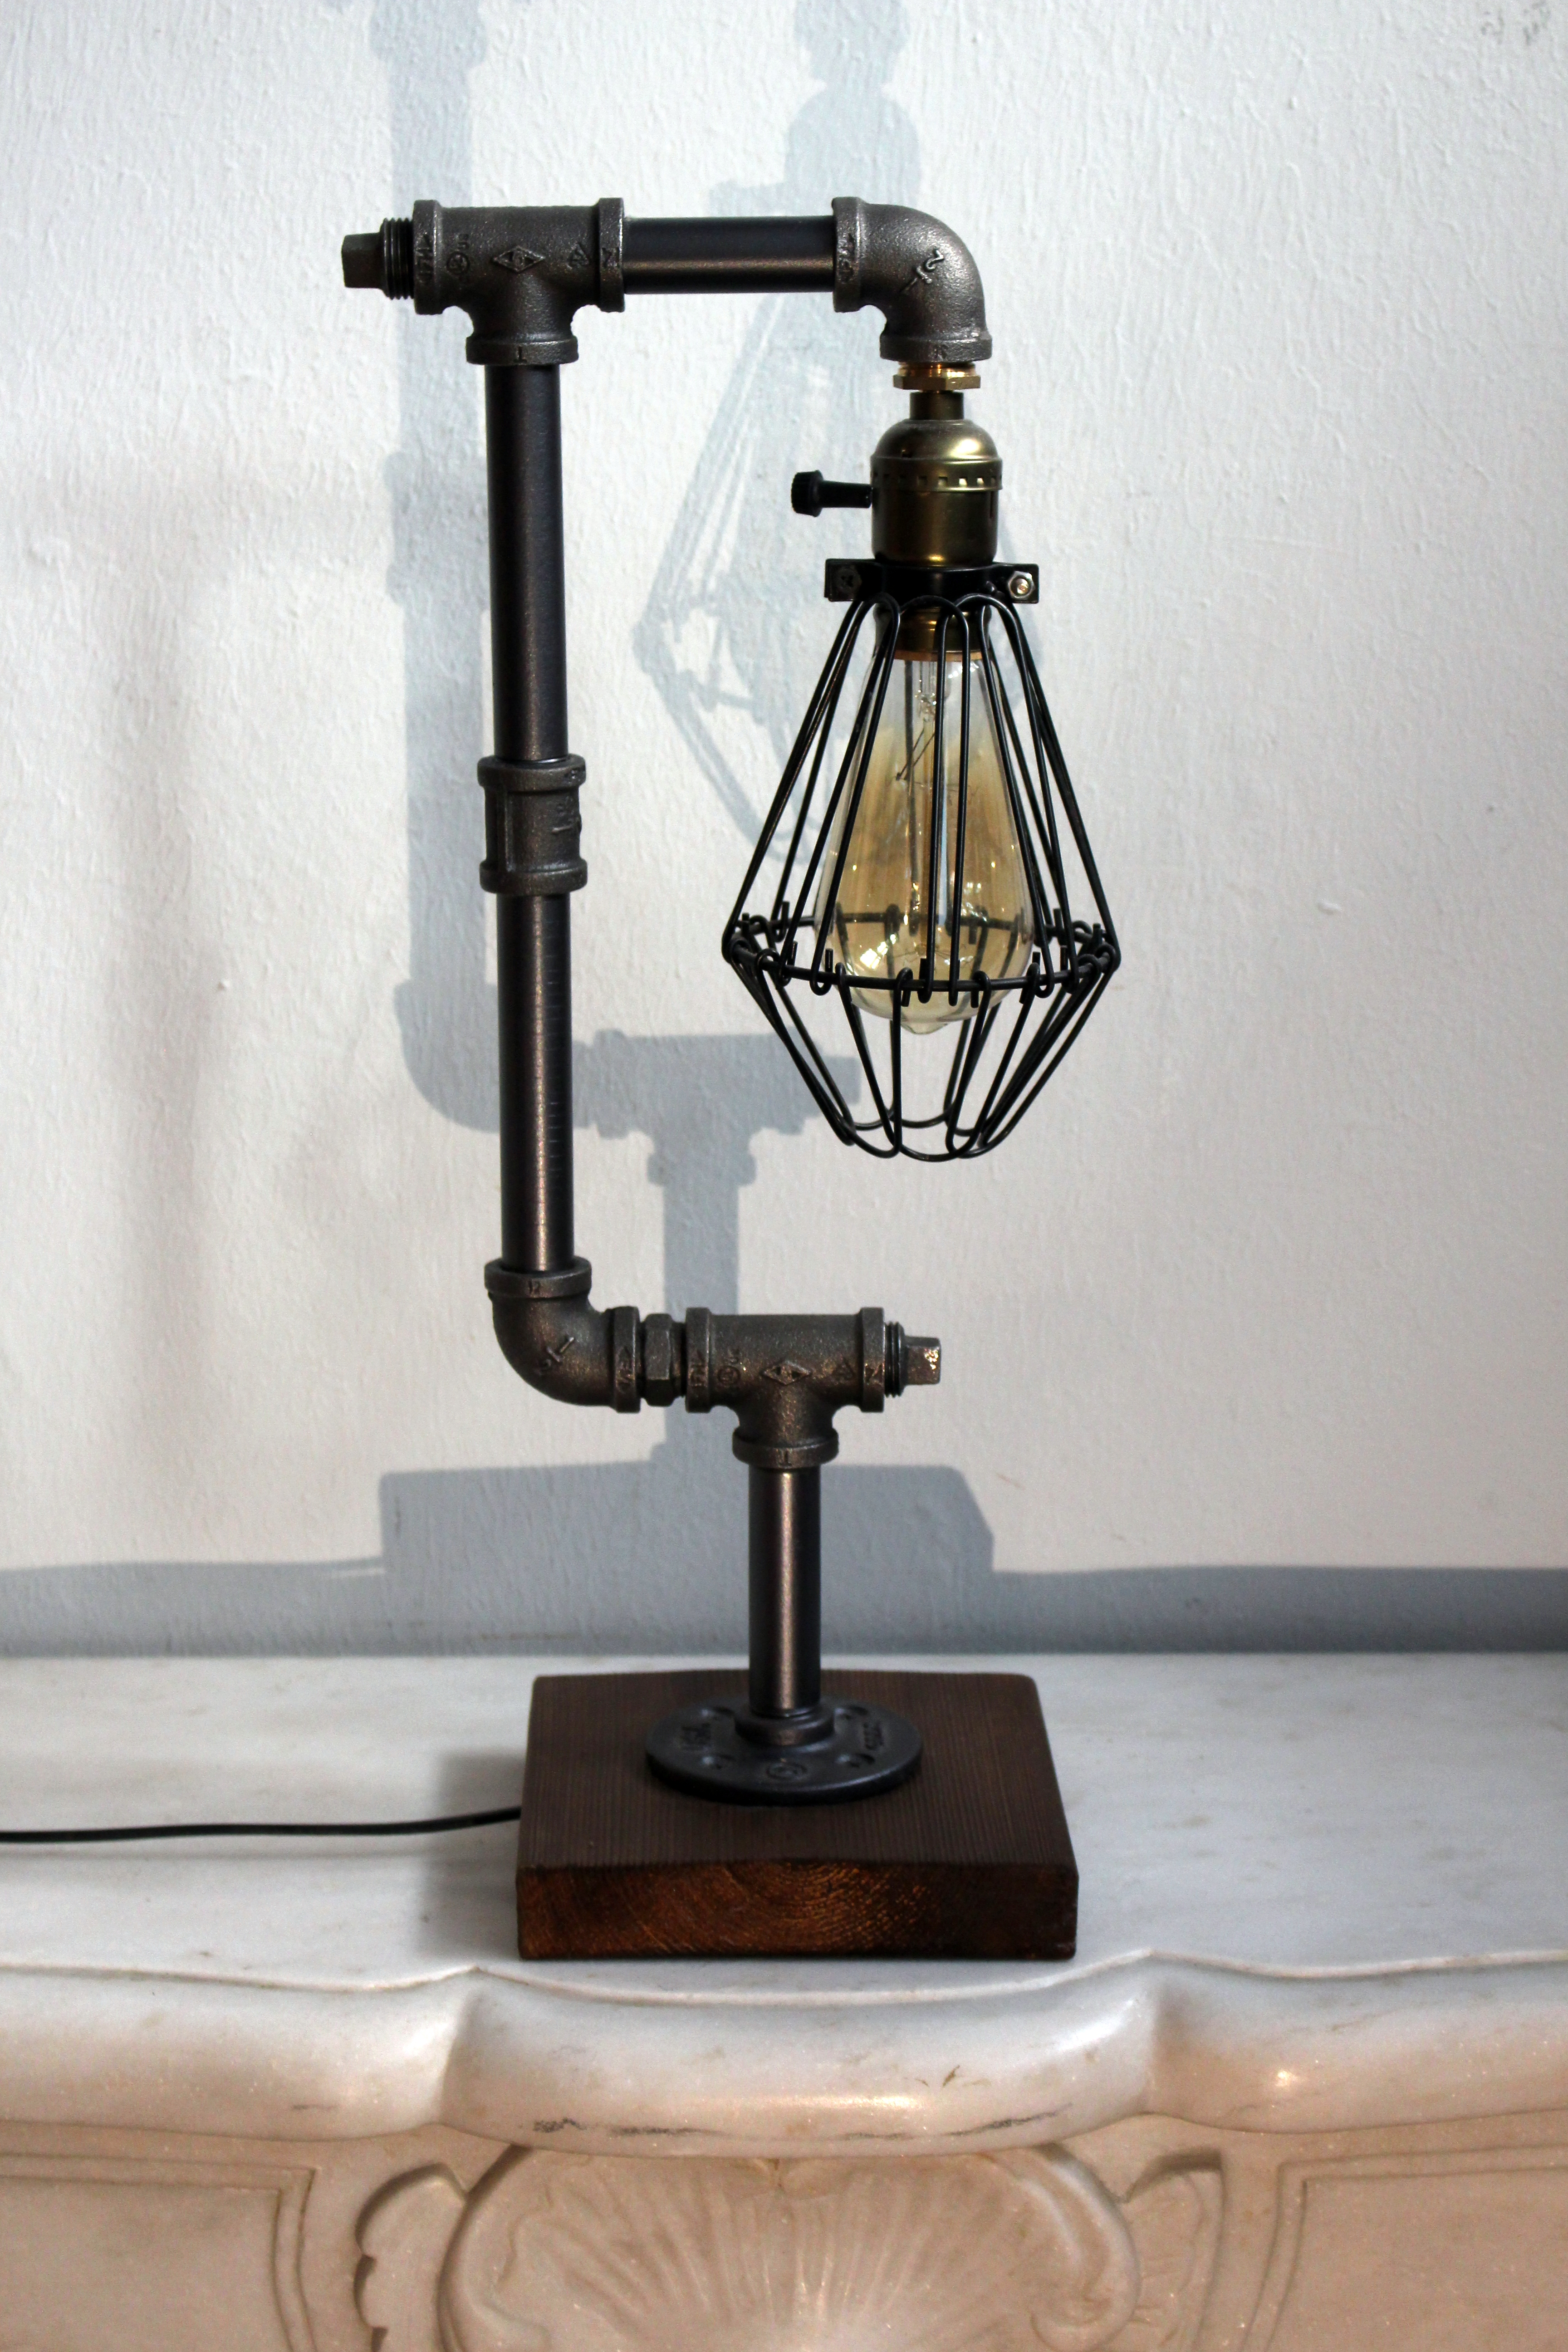 Wunderbar Industrie Style Galerie Von Lampe With Style.